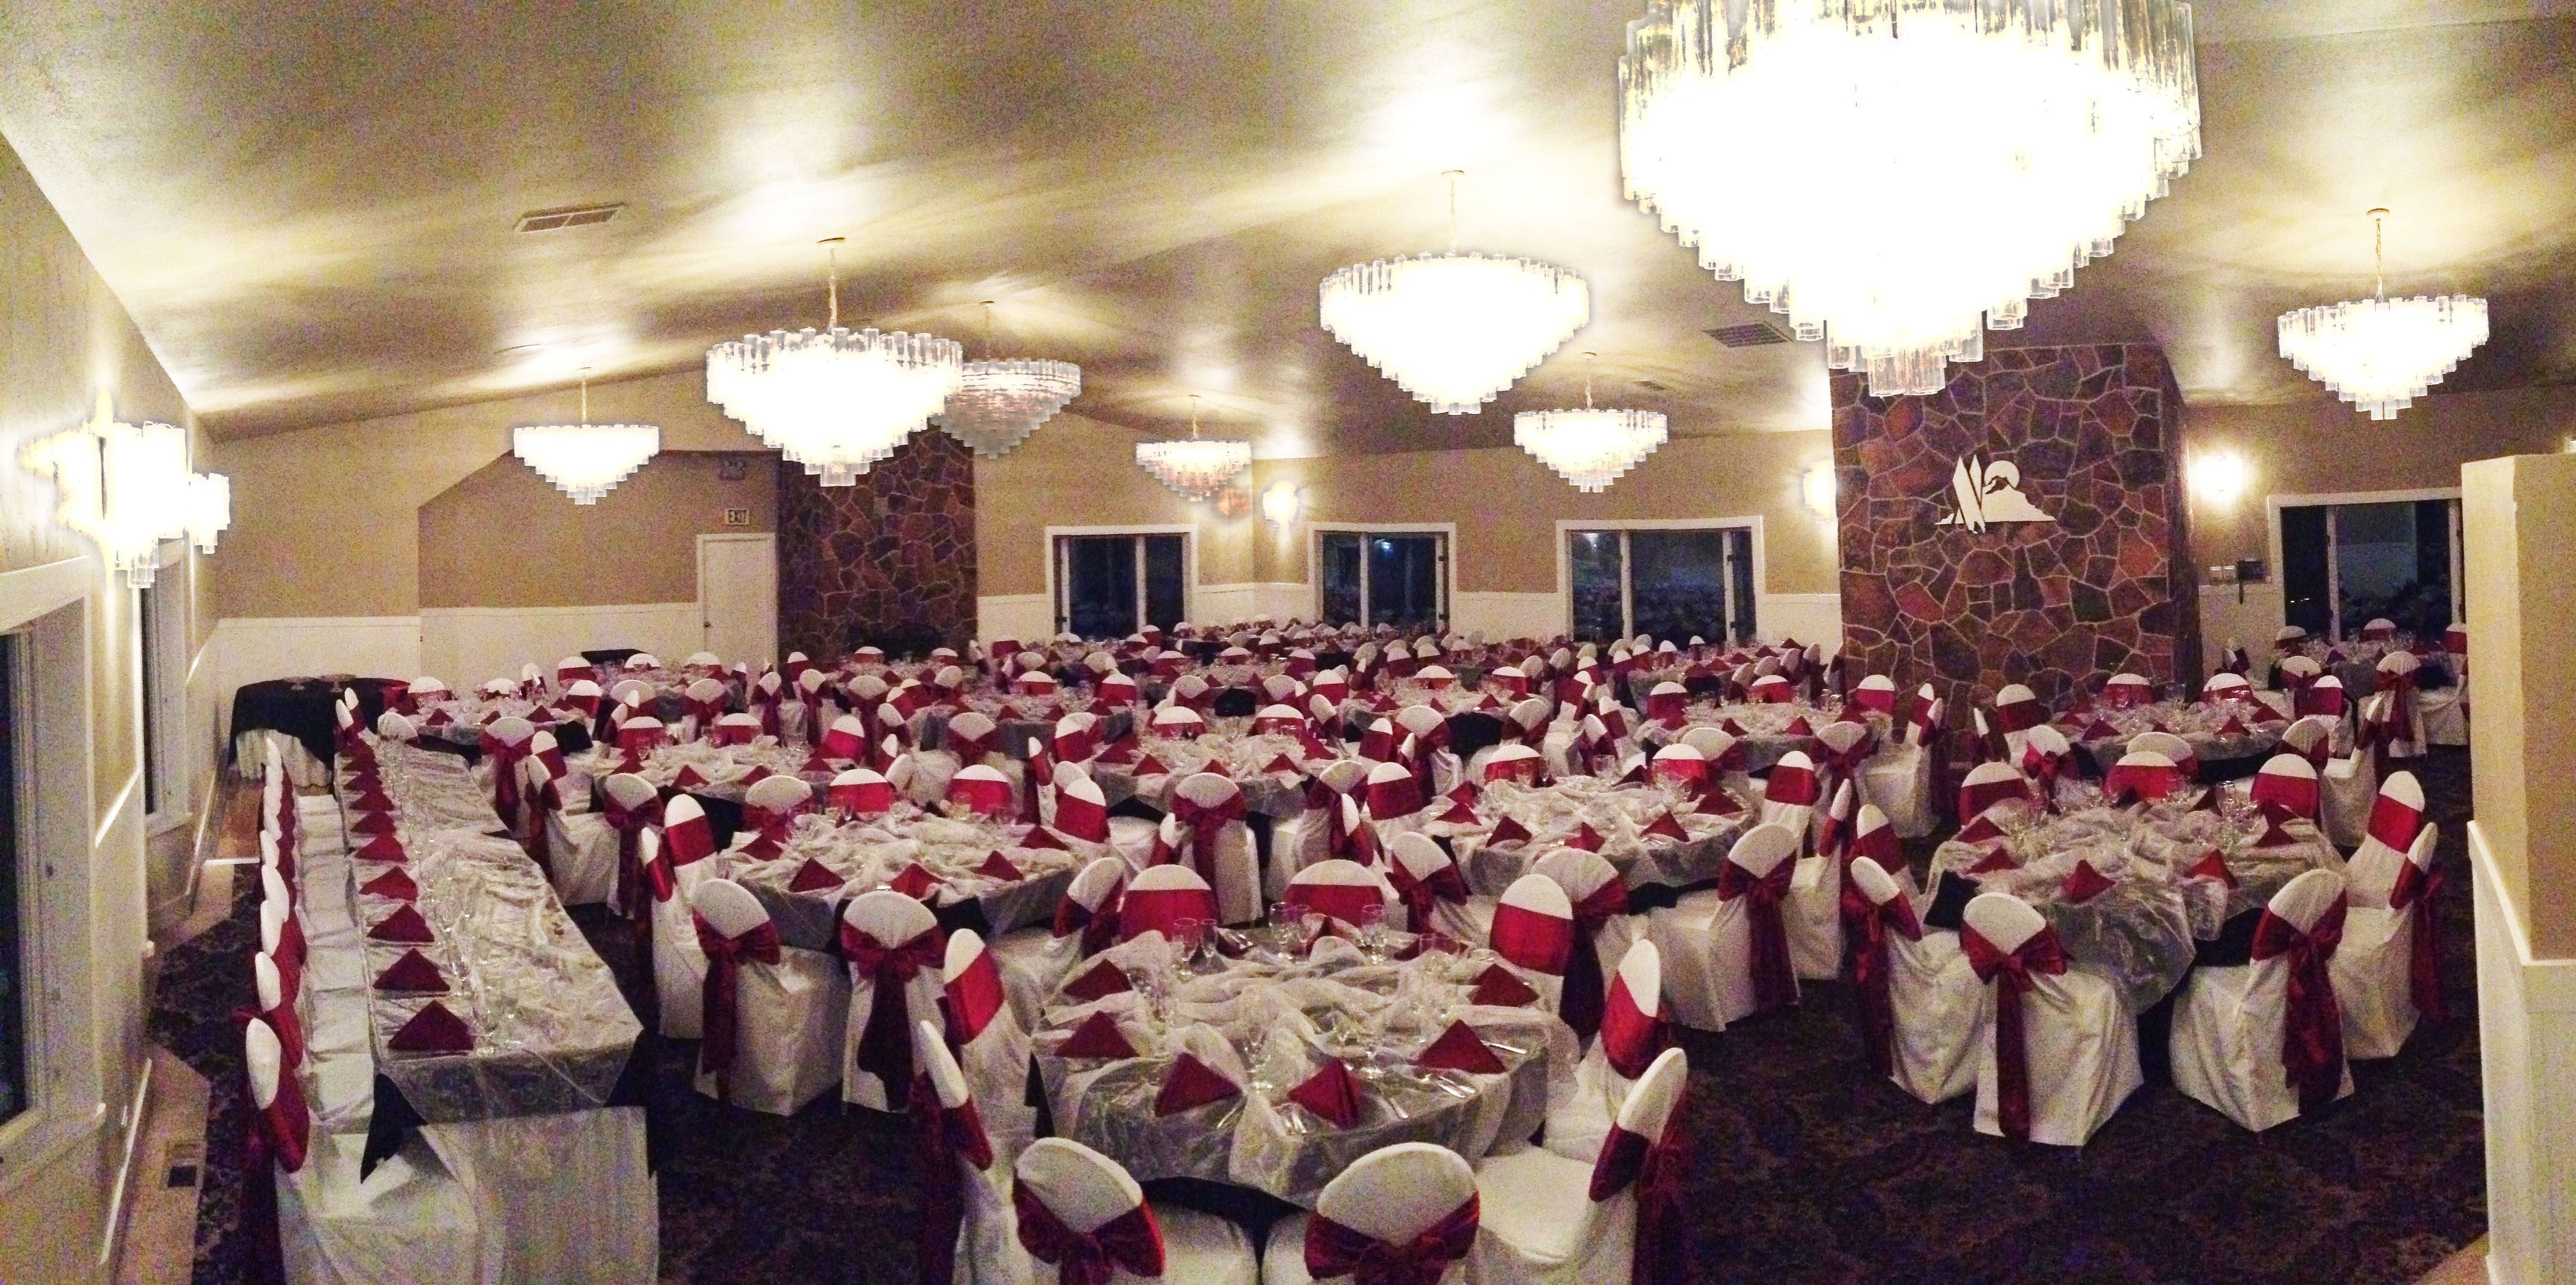 Silver Organza Overlay 14 Each With Black Table Linens Burgundy Napkins And White Skirting Included Room Al Chair Covers